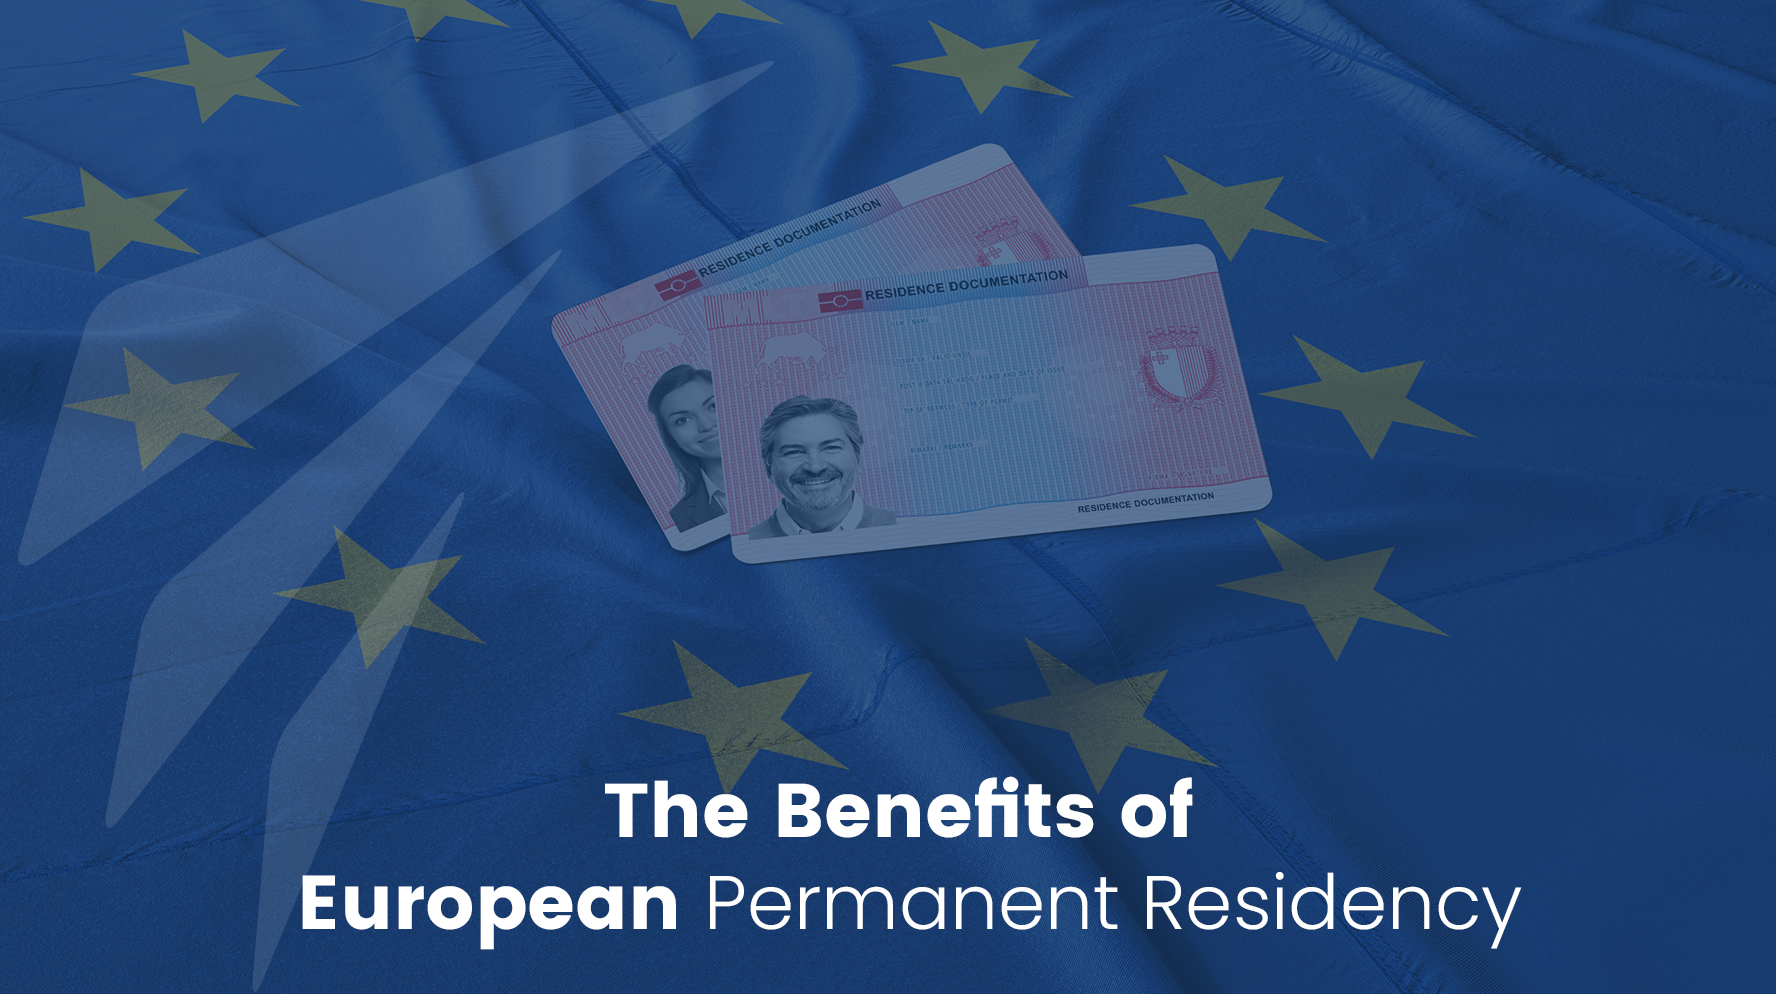 The Benefits of European Permanent Residency